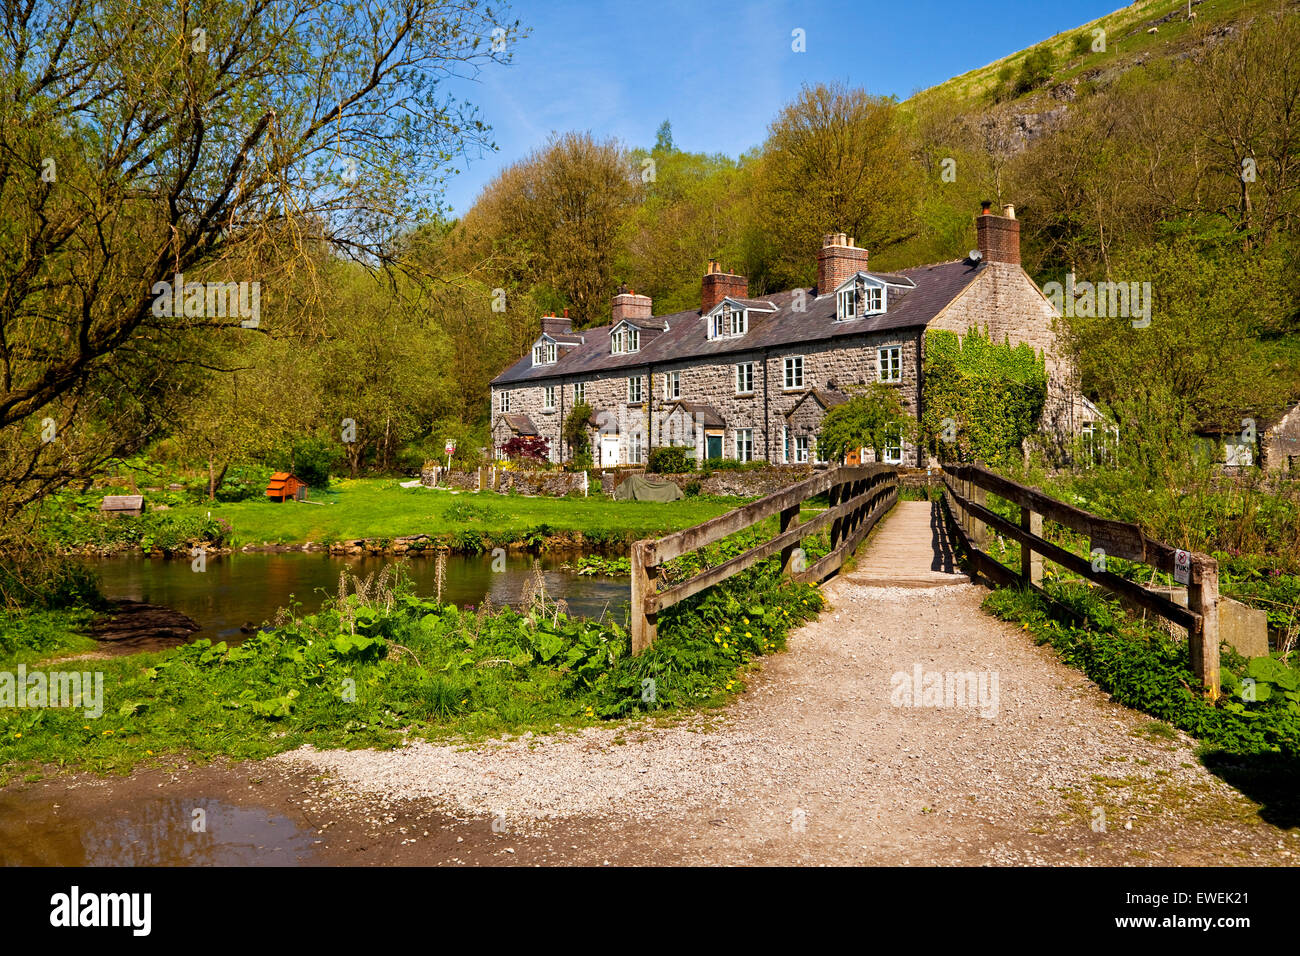 uk peak district cottages alamy stock photo mill blackwell